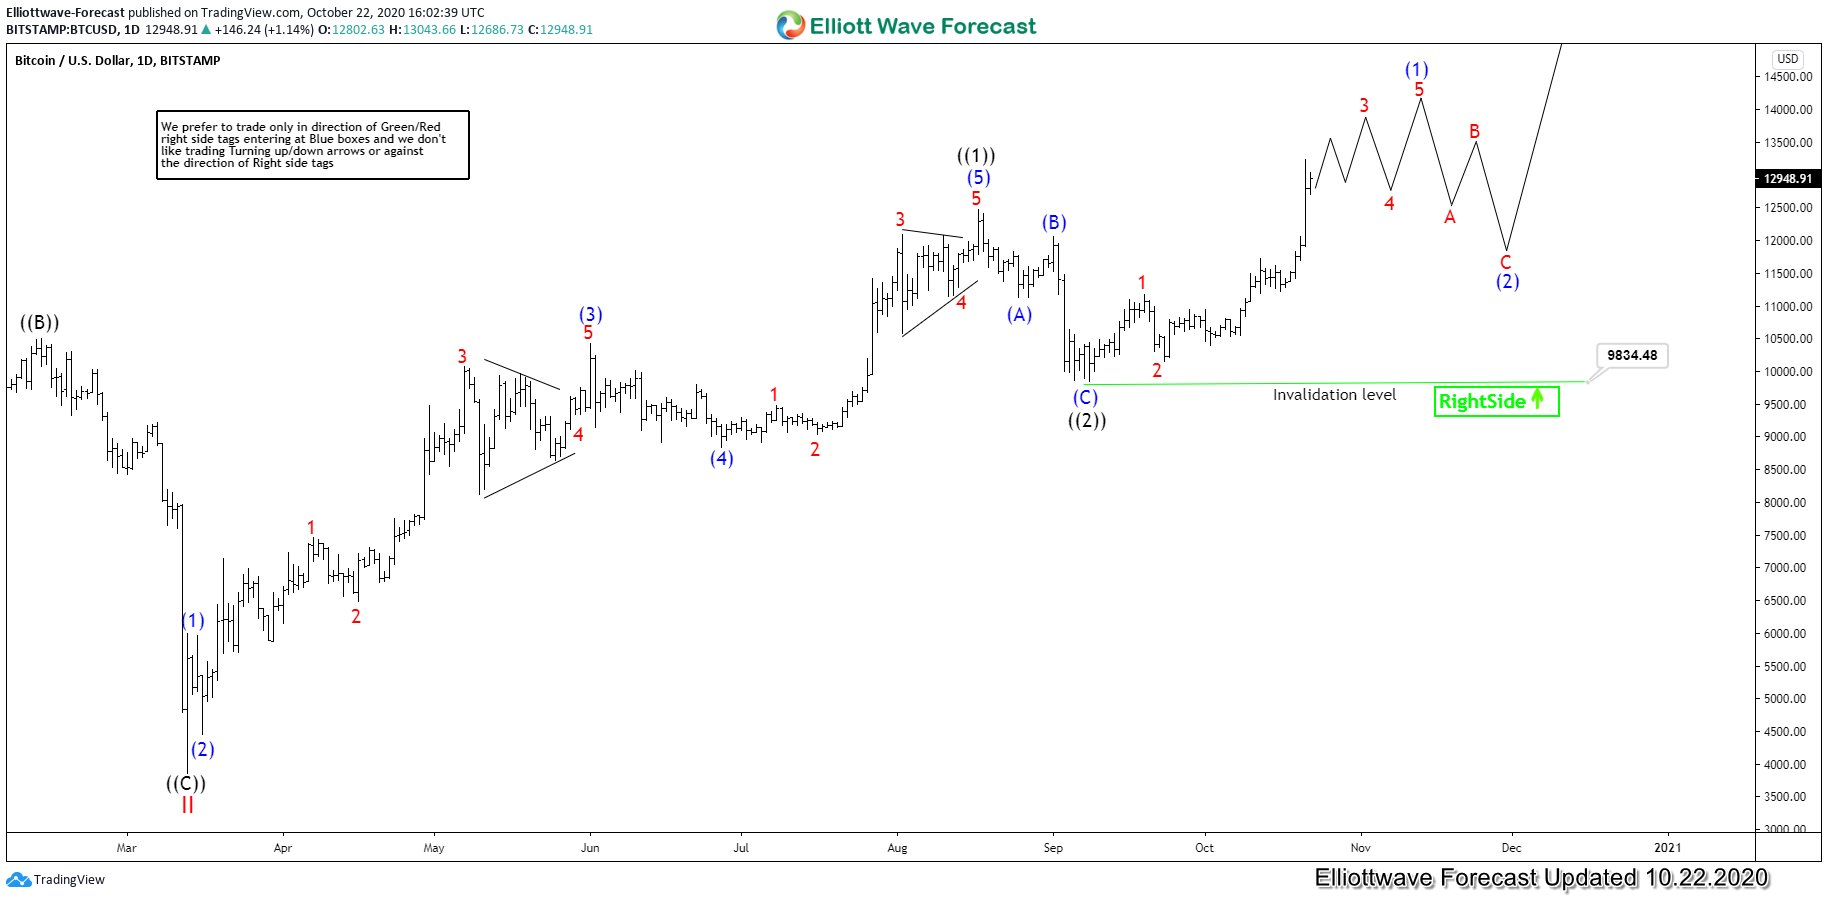 Bitcoin in Elliott wave (1) of ((3)) scenario